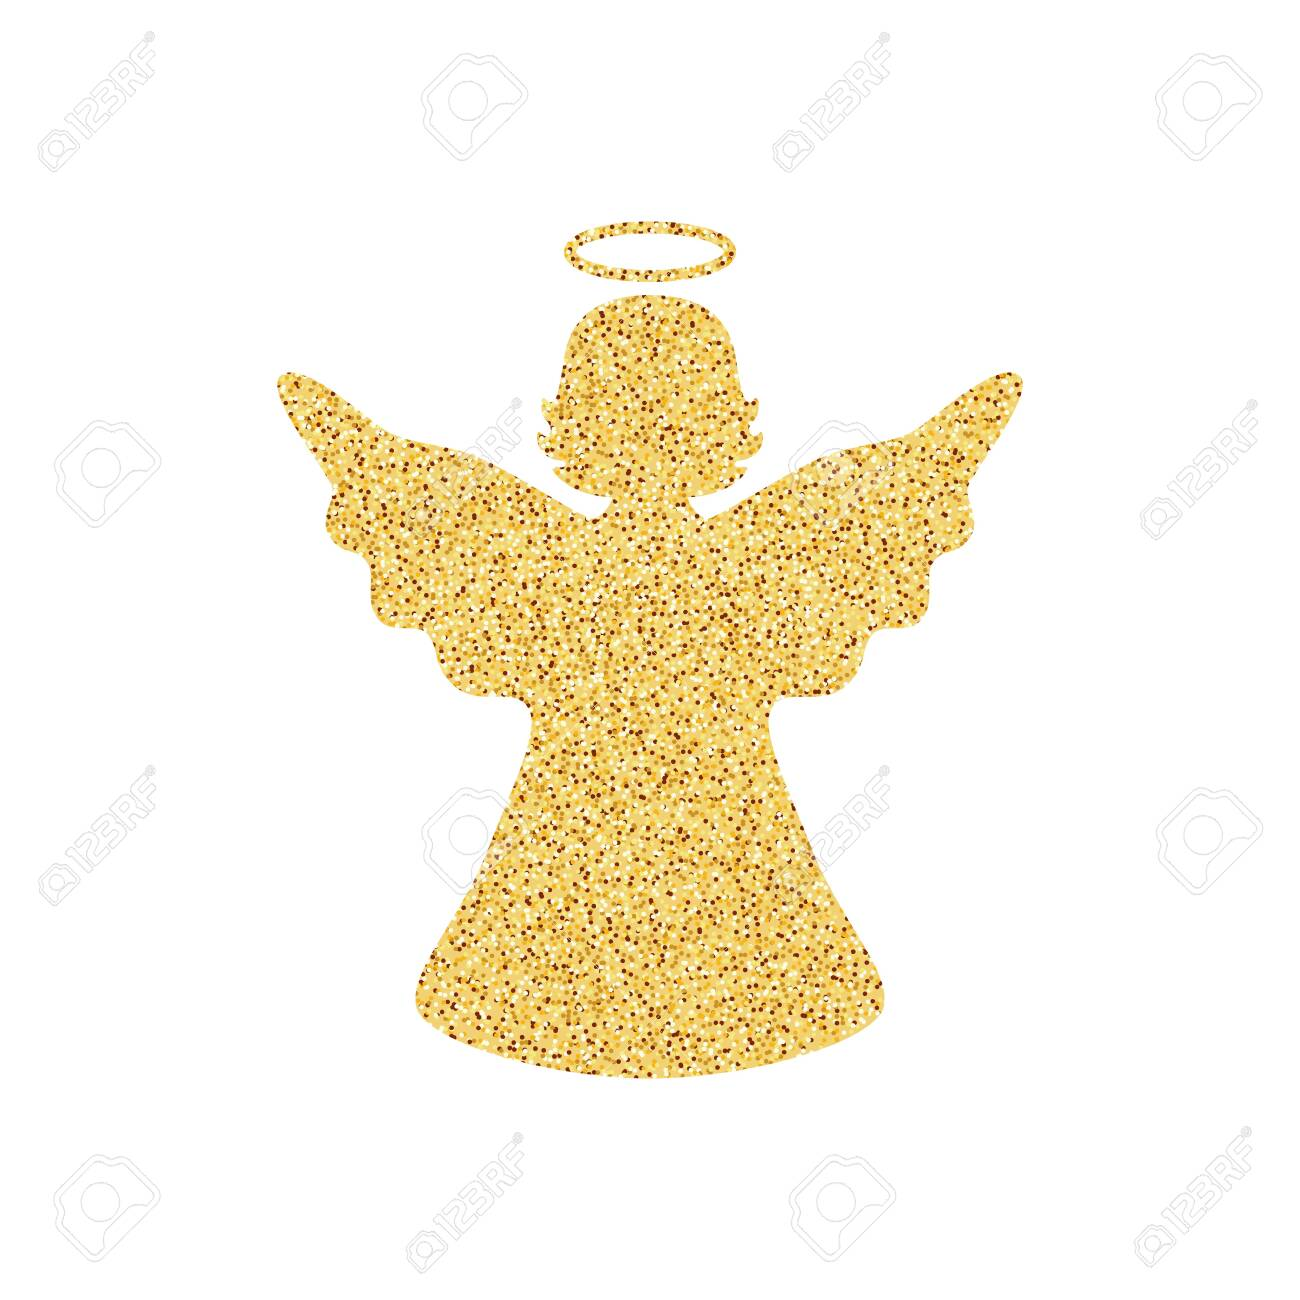 Isolated On White Background Golden Angel. Christmas Decor. Vector..  Royalty Free Cliparts, Vectors, And Stock Illustration. Image 123069806.